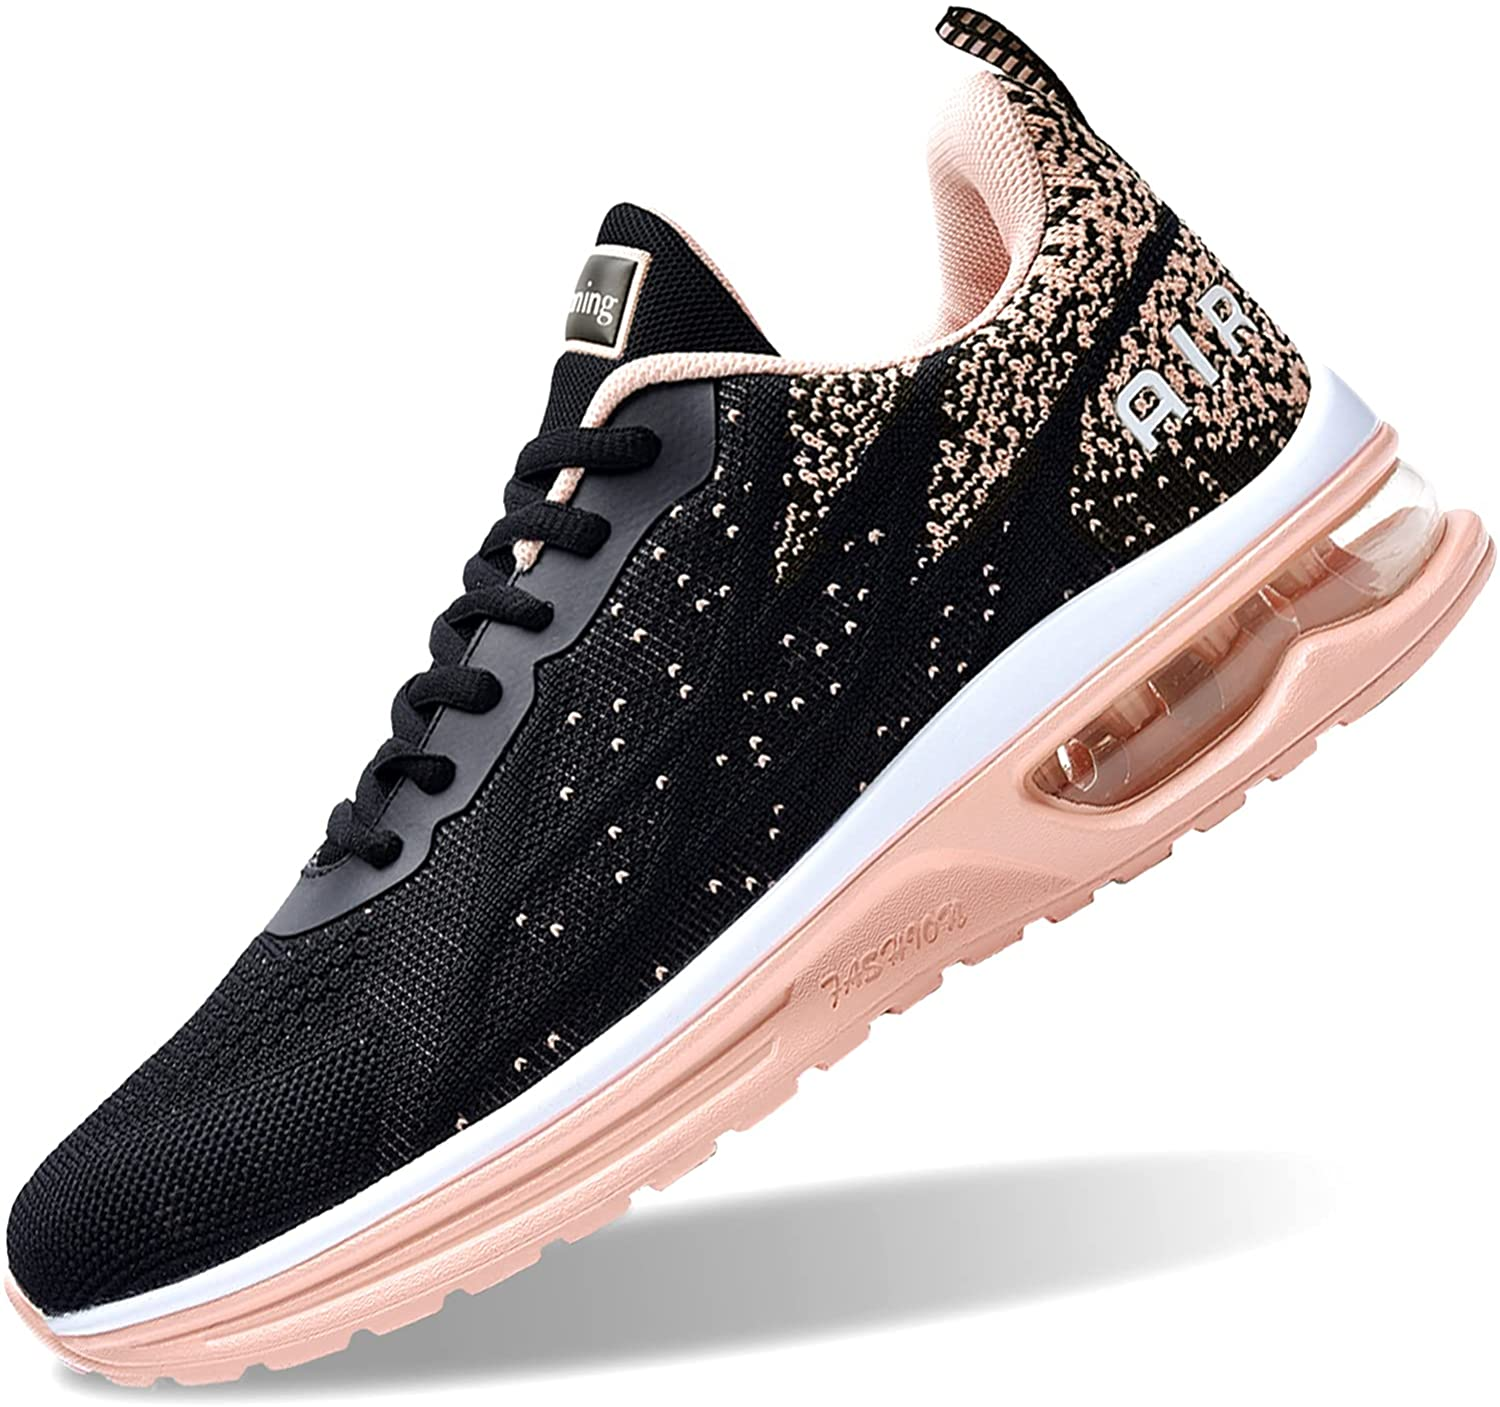 GOOBON Air Shoes Spring new work for Online limited product Women Tennis Athletic Sports Workout Gym Ru